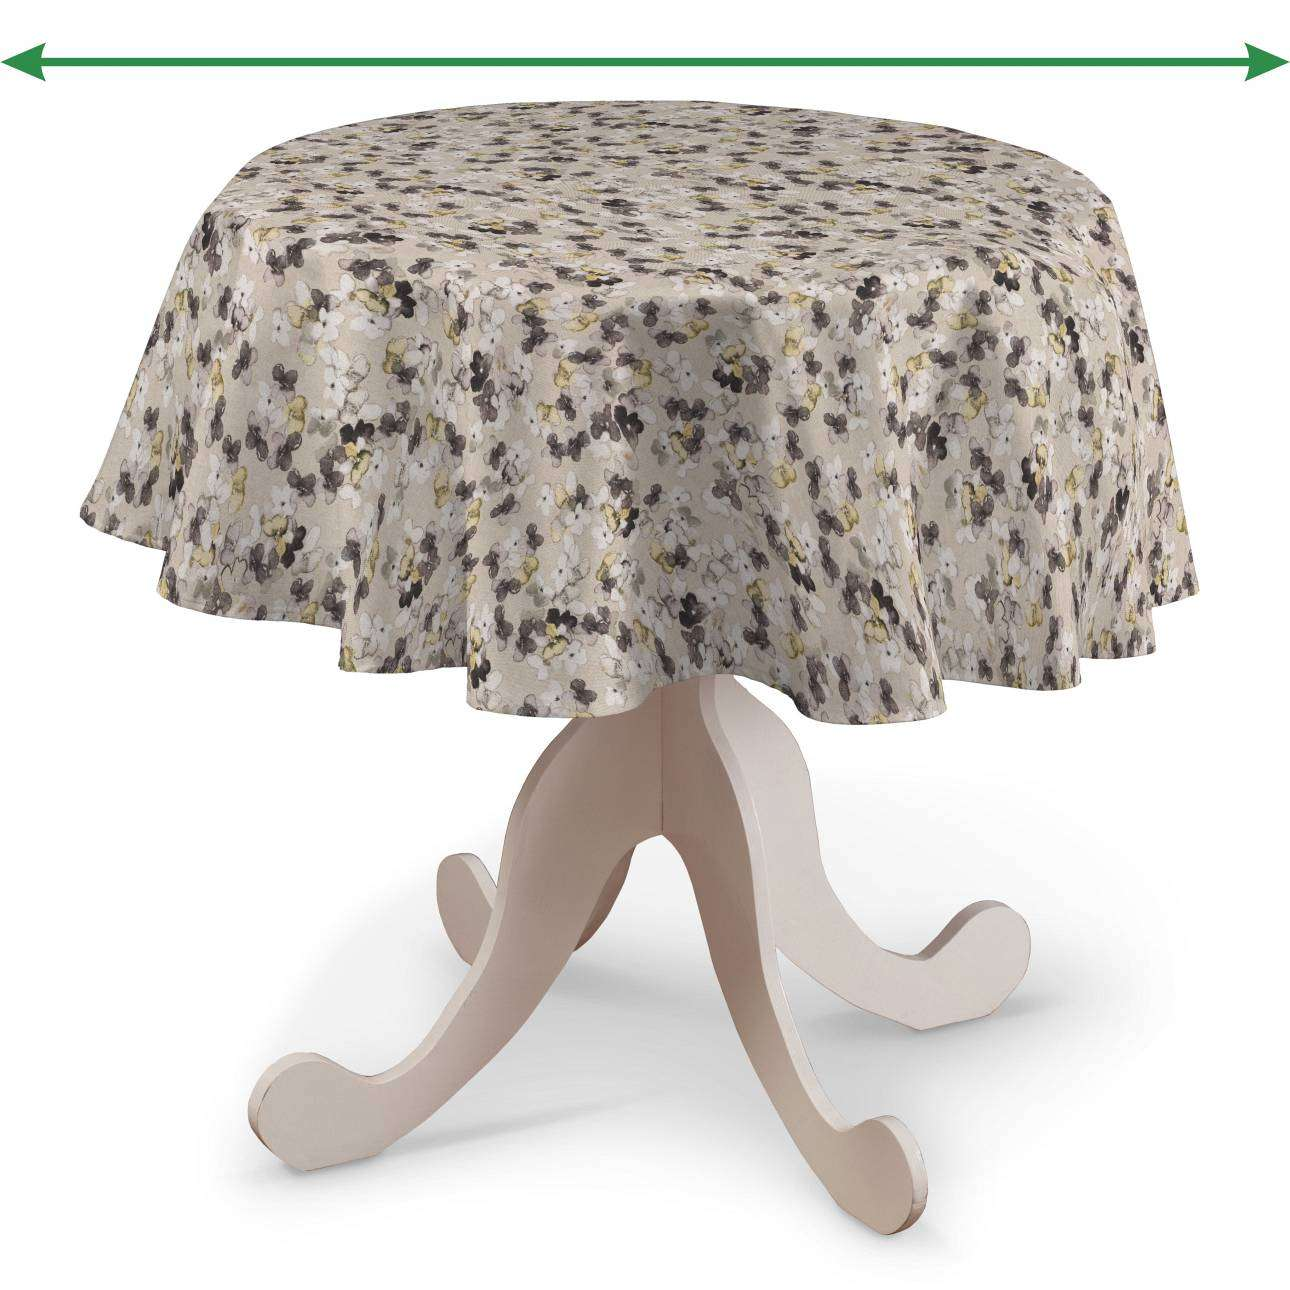 Round tablecloth in collection Londres, fabric: 140-48